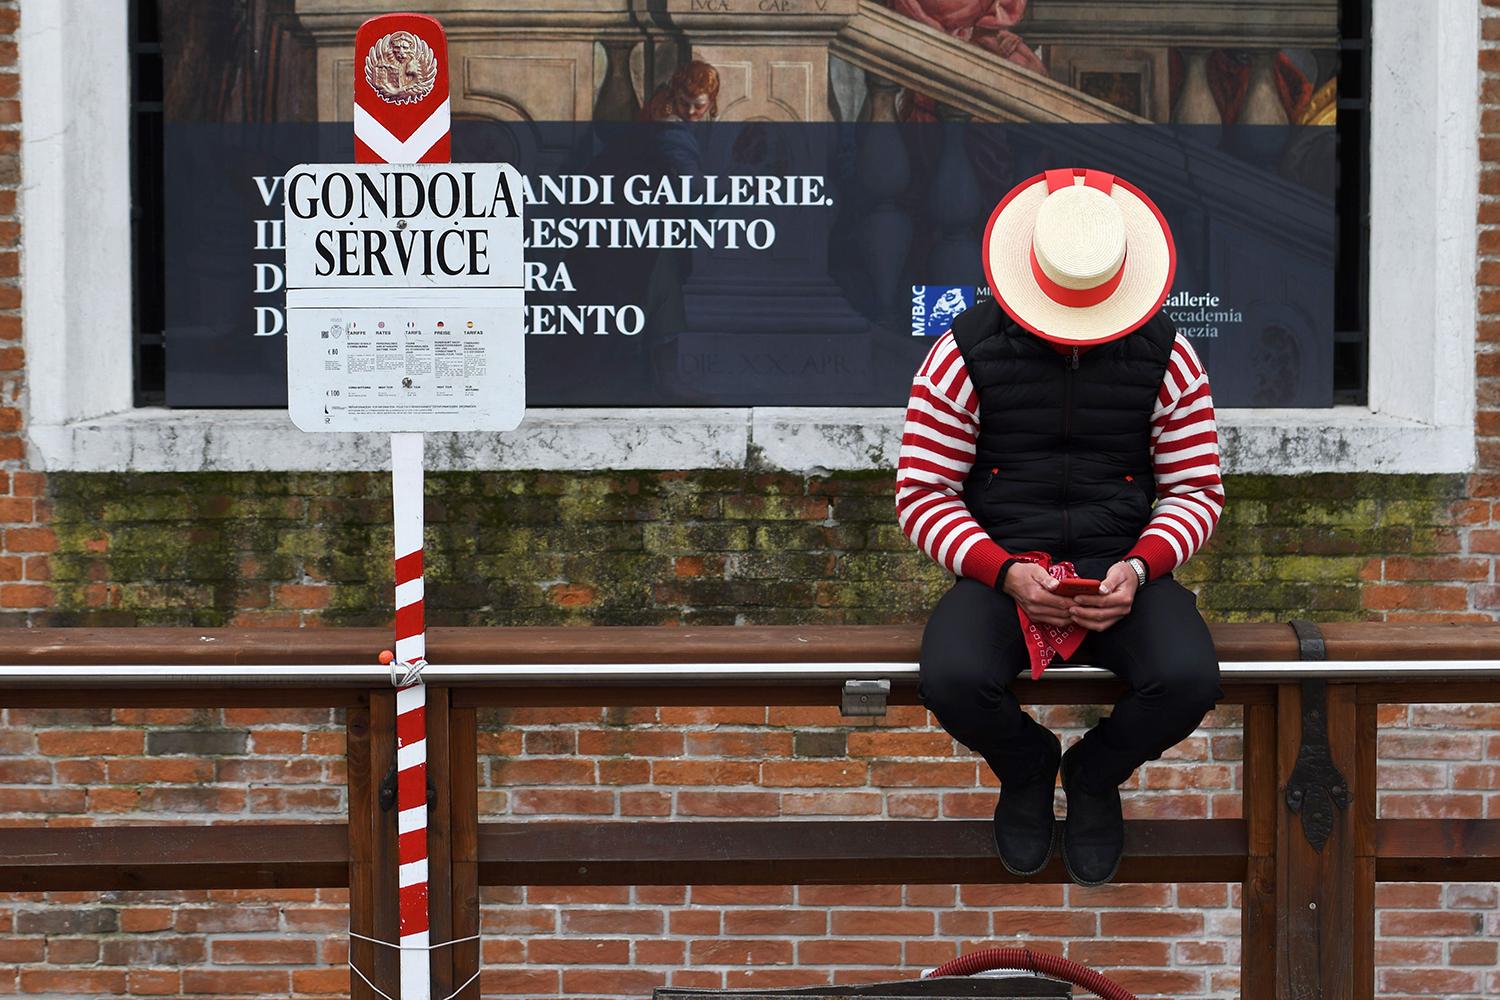 A gondolier checks his phone while waiting for tourists in Venice, Italy, on March 5. ANDREA PATTARO/AFP via Getty Images